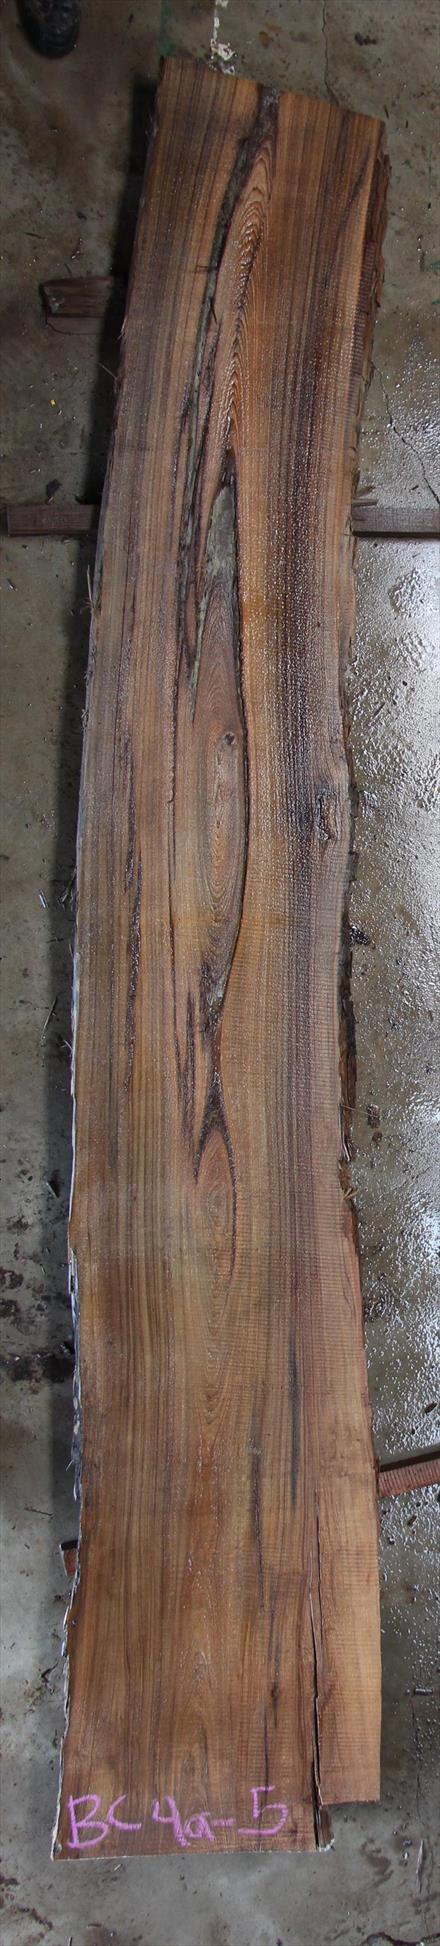 Buried Cypress Slab BC004a-05